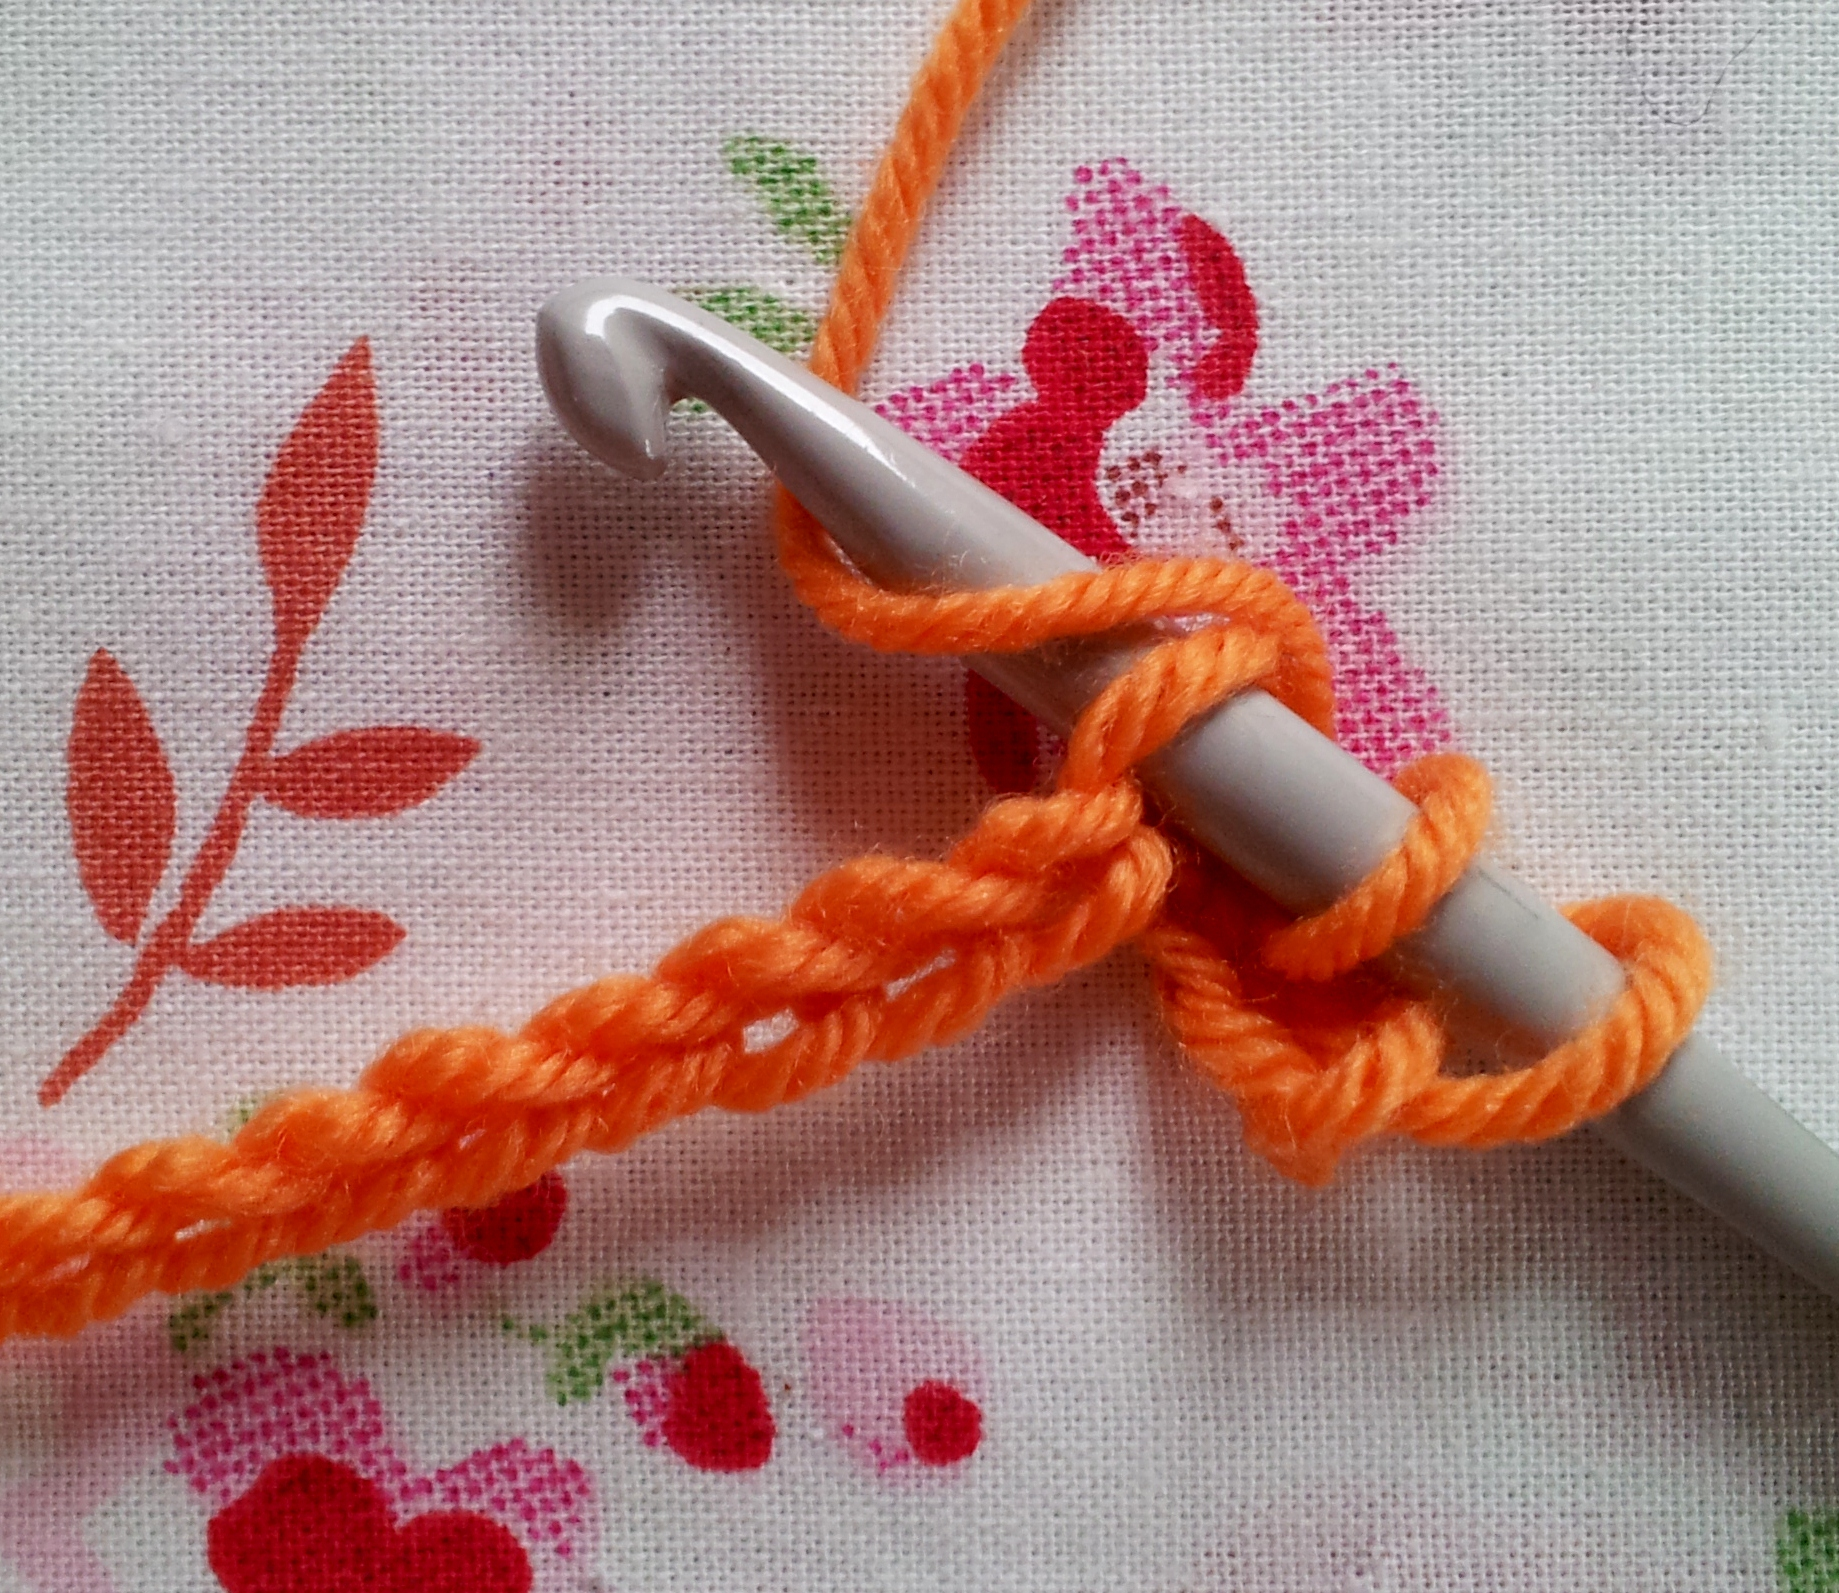 Crochet Stitches Uk Treble : Anyone for crochet? The treble (UK) or double (US) stitch ...